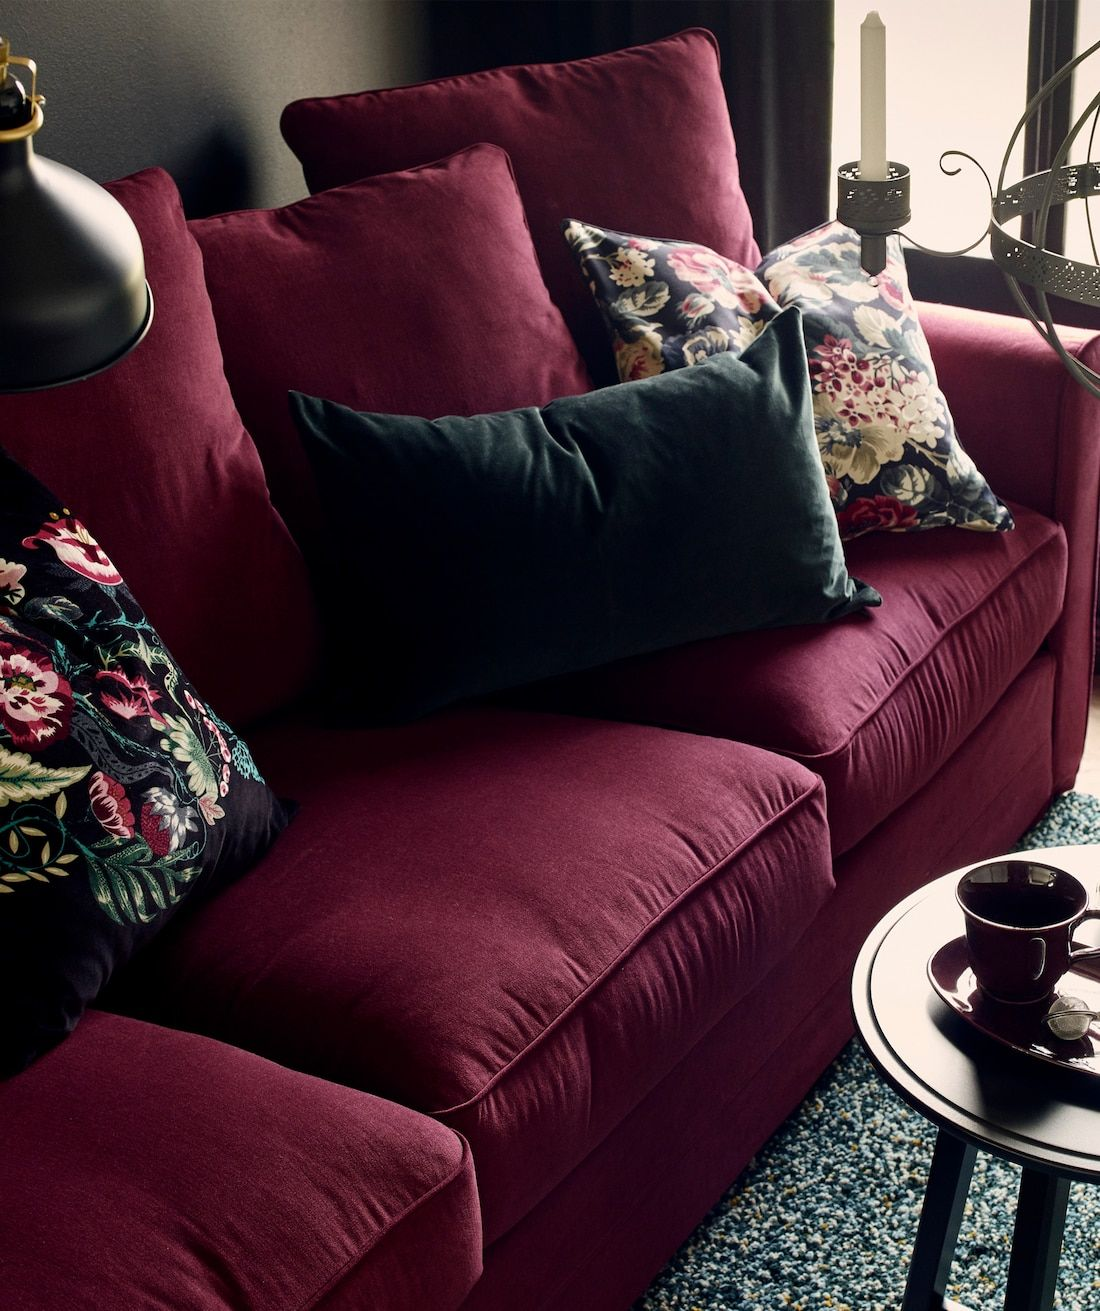 One room, two styles in 2020 | Living room sofa design ...